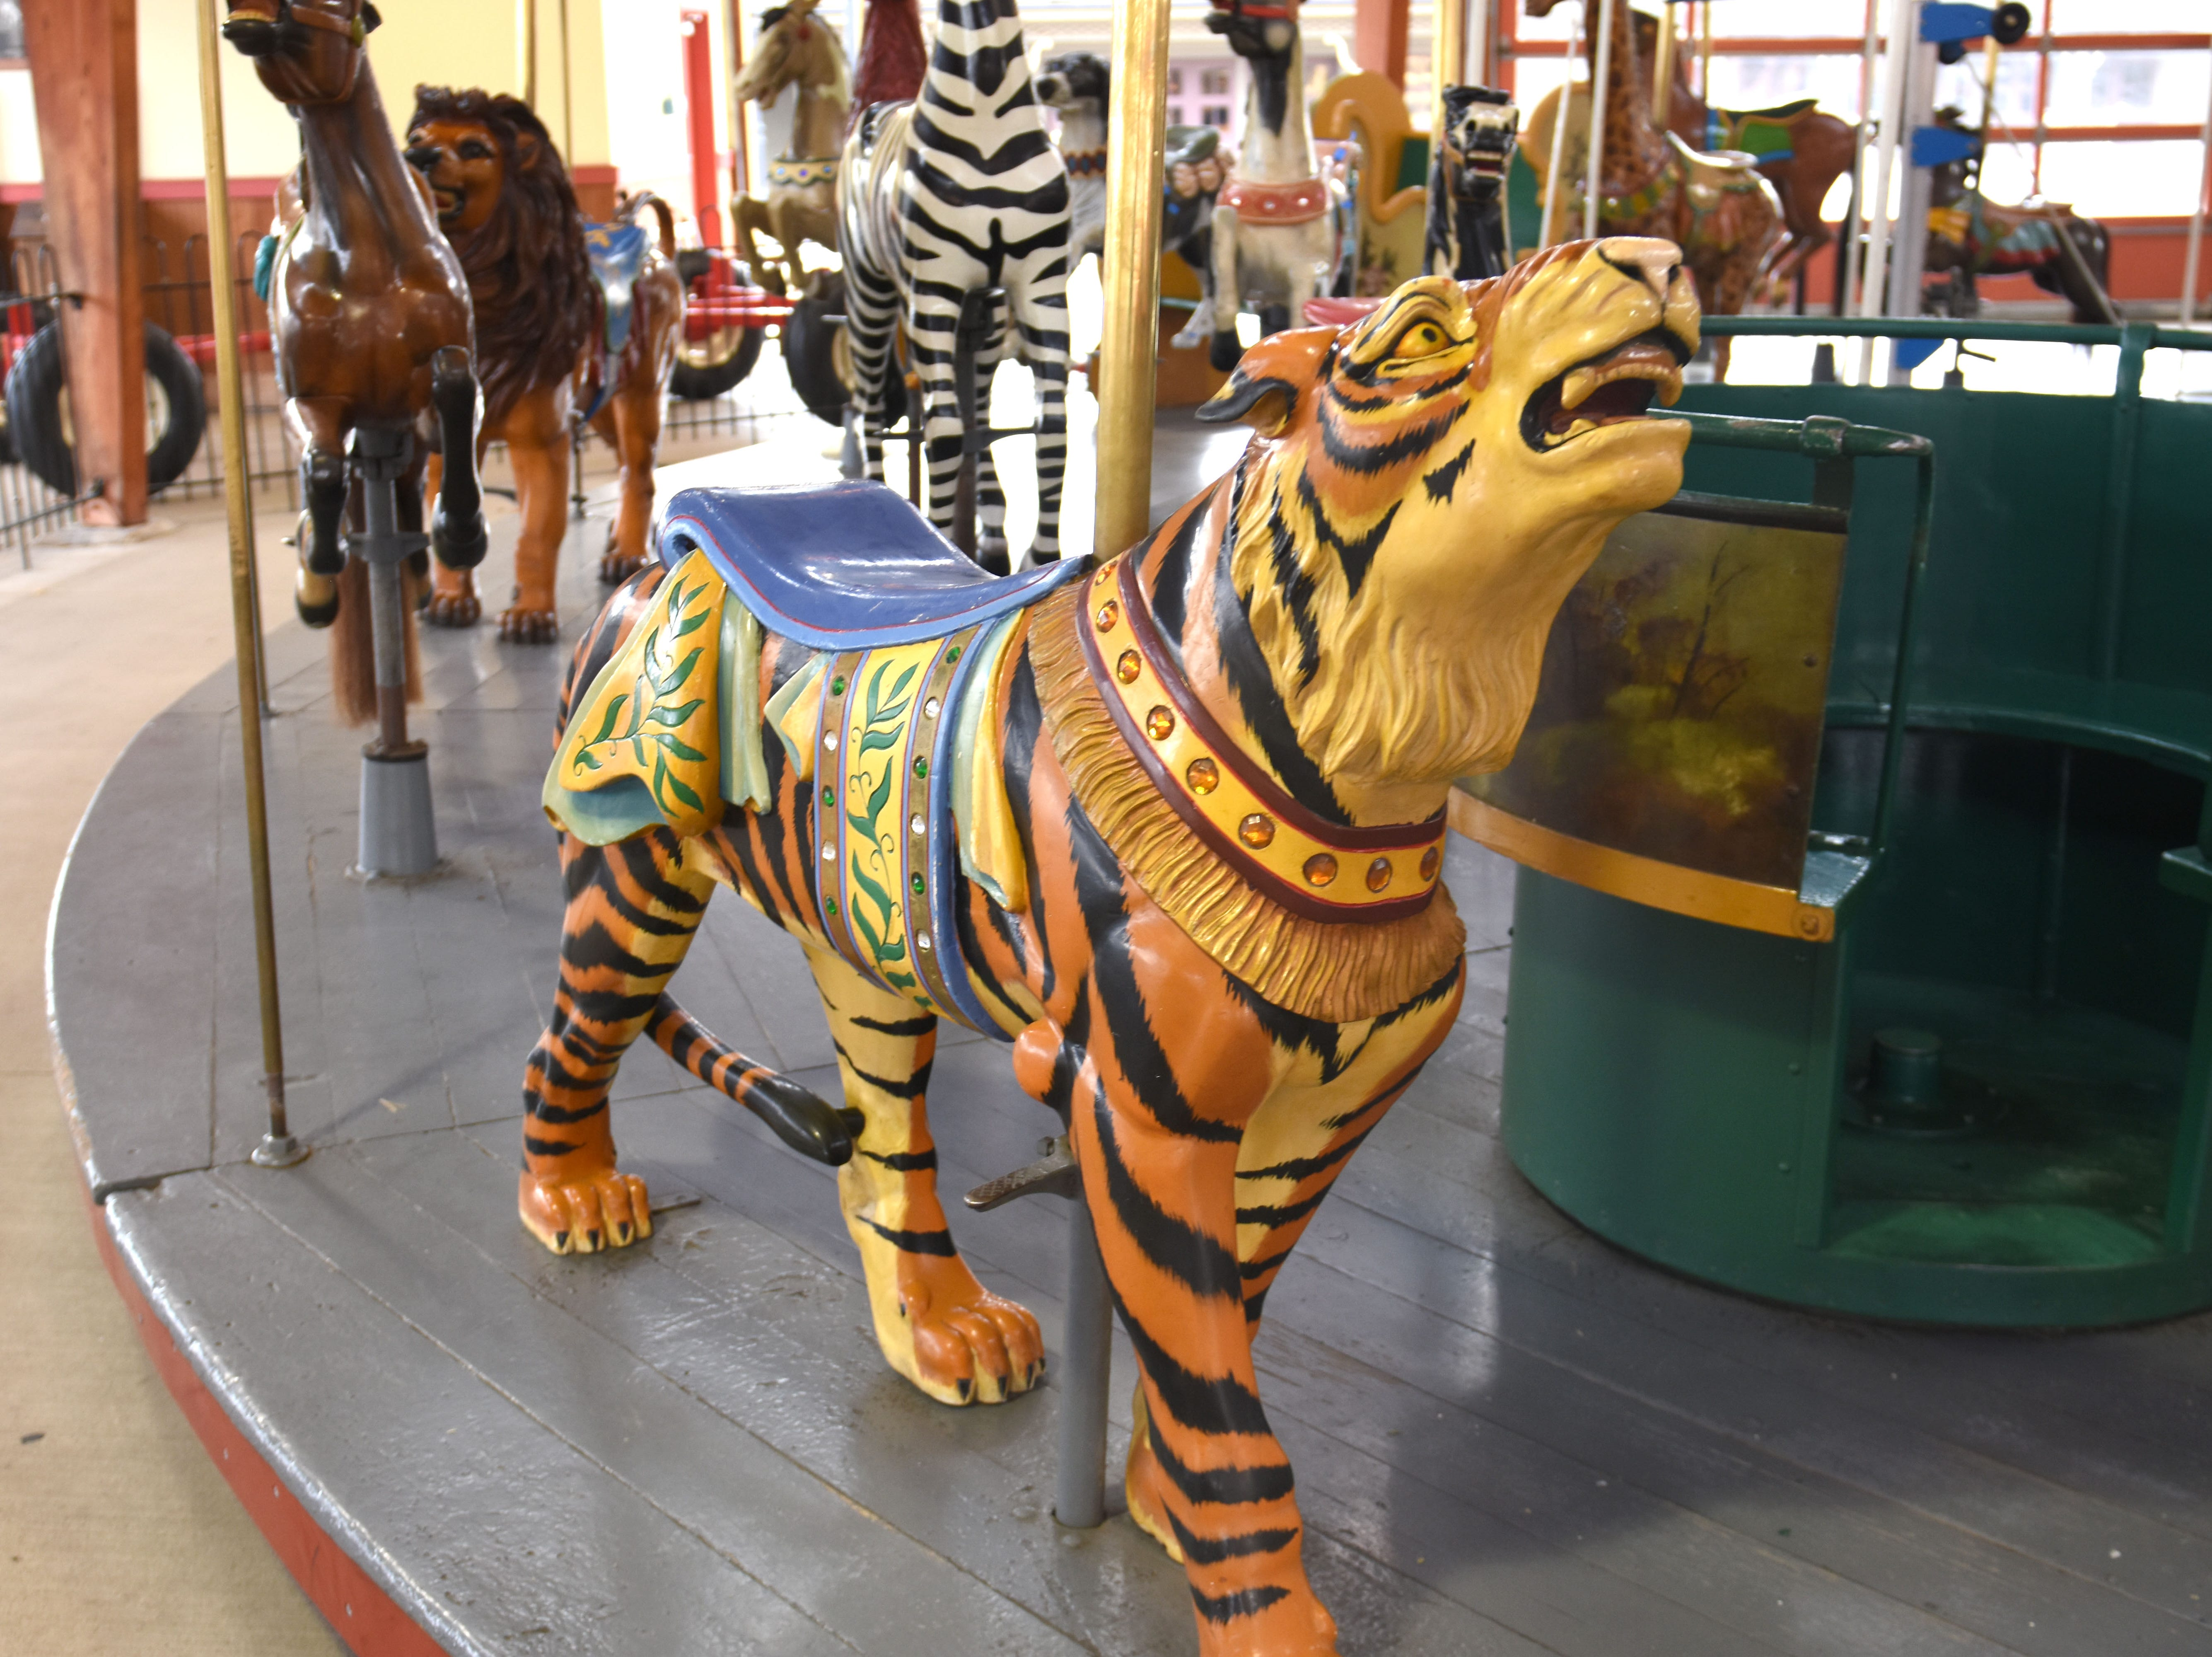 A tiger roars back to life at Greenfield Village in Dearborn